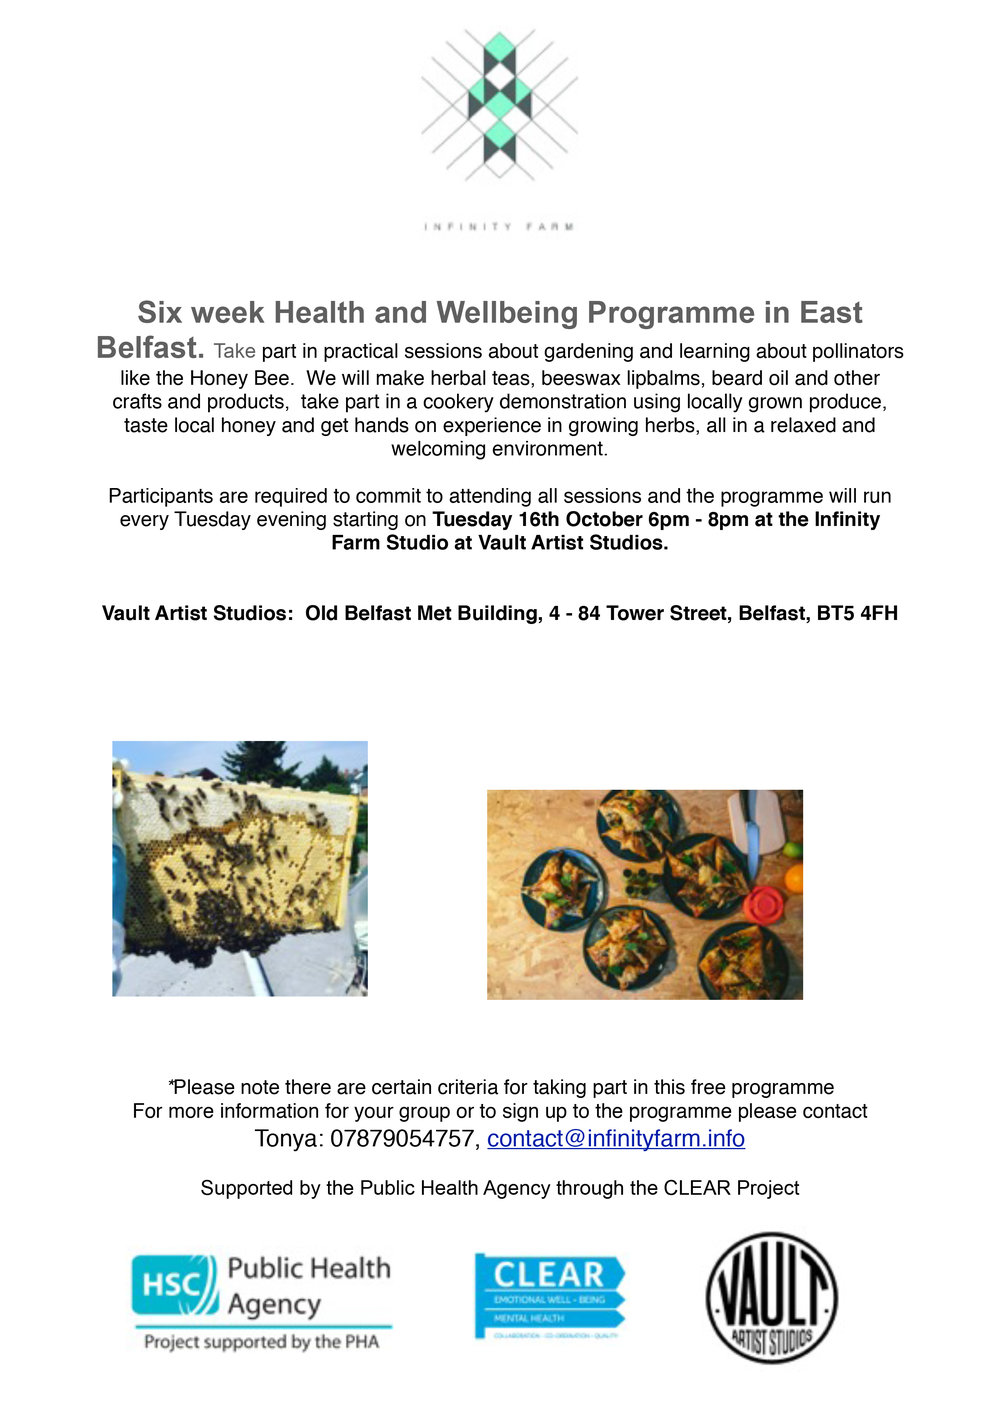 Interested in volunteering? - We are looking for volunteers to help out at the upcoming Health and Wellbeing programme taking place at Vault Studios, please get in touch if you are interested: contact@infinityfarm.info